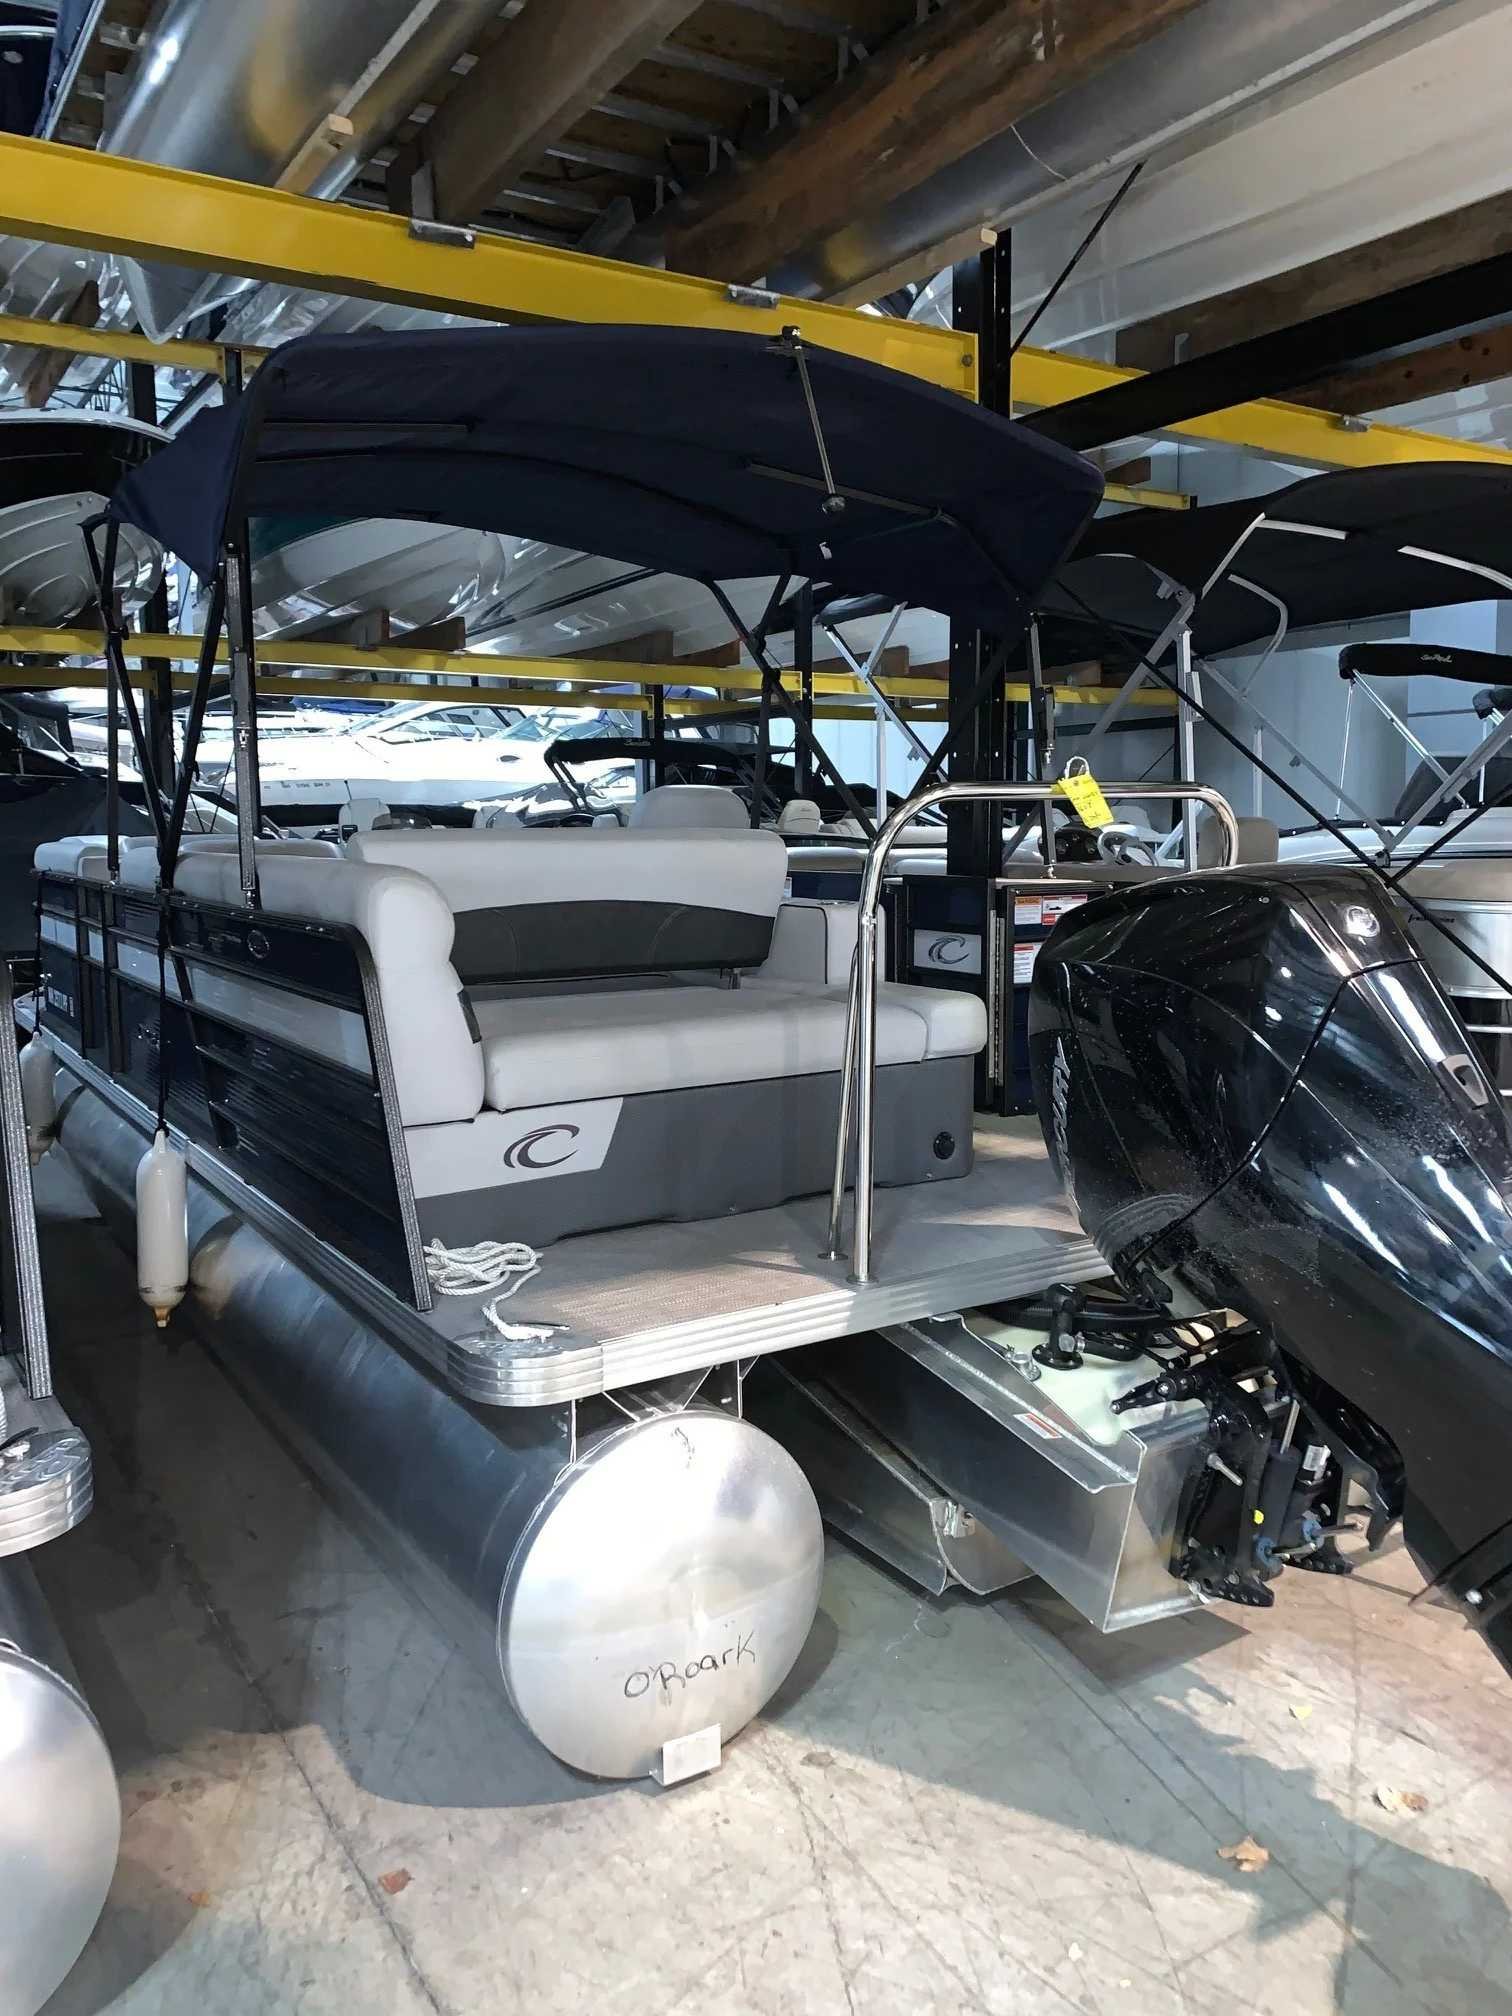 2019 Crest boat for sale, model of the boat is II 220 SLS & Image # 9 of 9